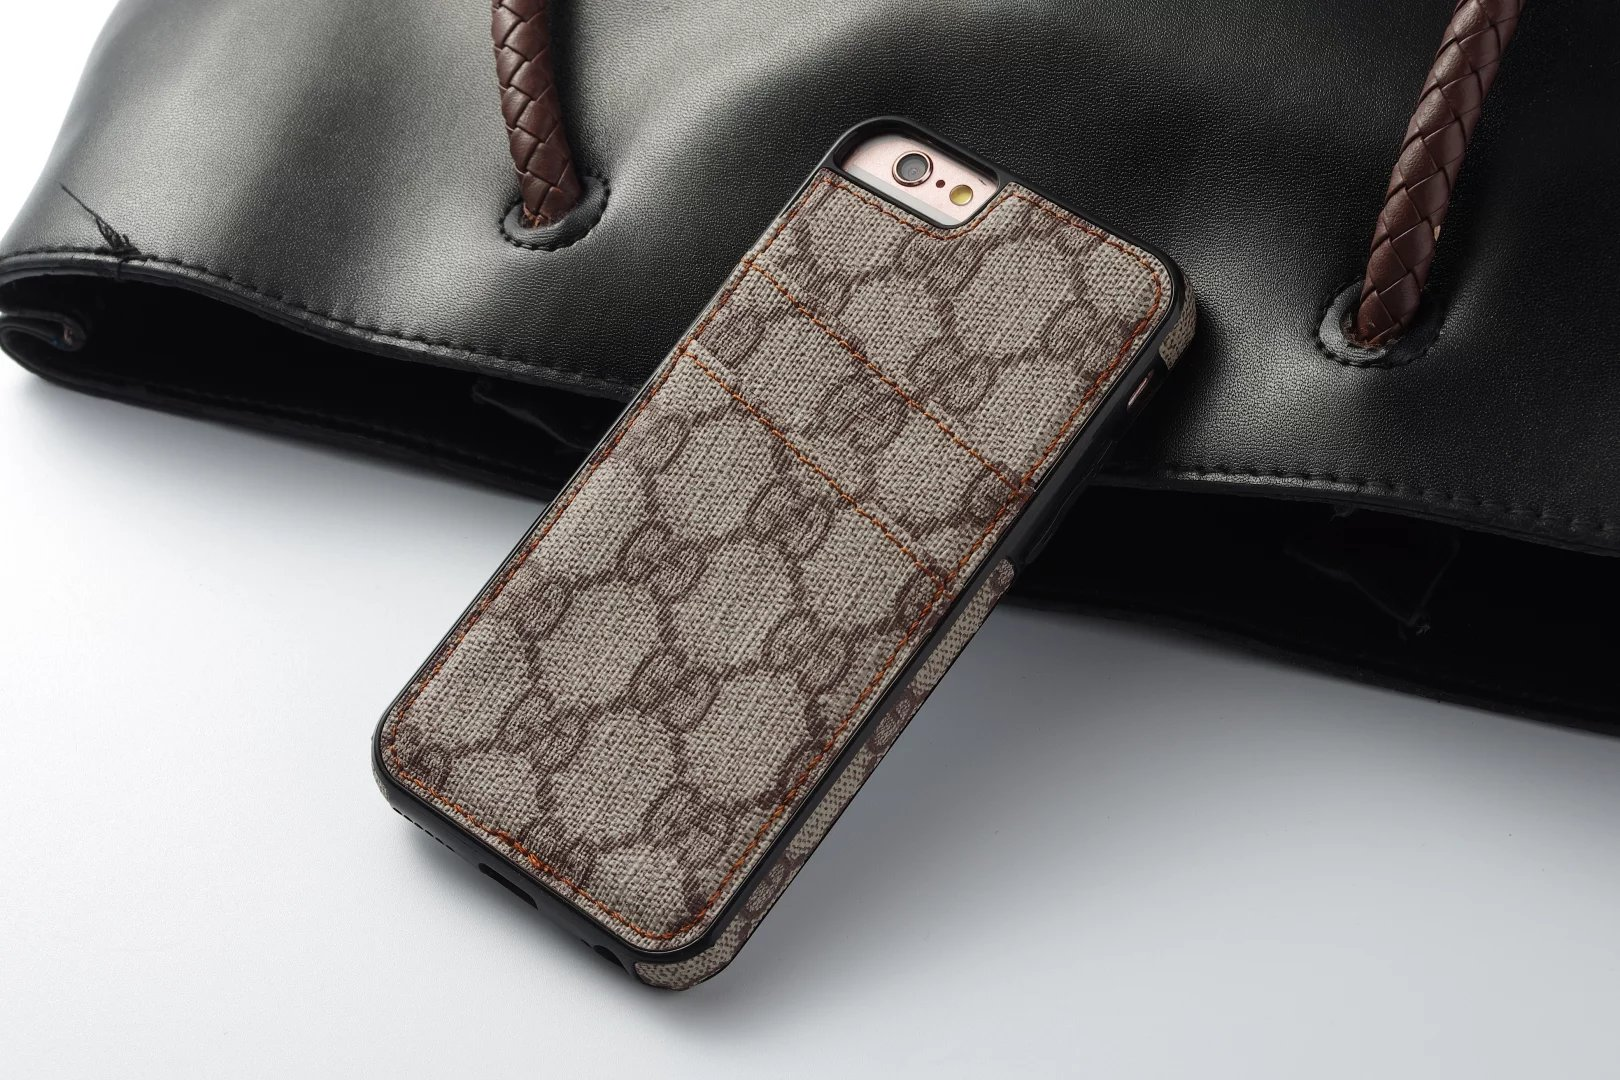 schutzhülle iphone iphone schutzhülle Gucci iphone7 hülle iphone7 hüllen handycover 7lbst machen iphone 7 hülle von apple handy gürteltasche iphone 7 leder handytasche iphone 7 iphone etuis